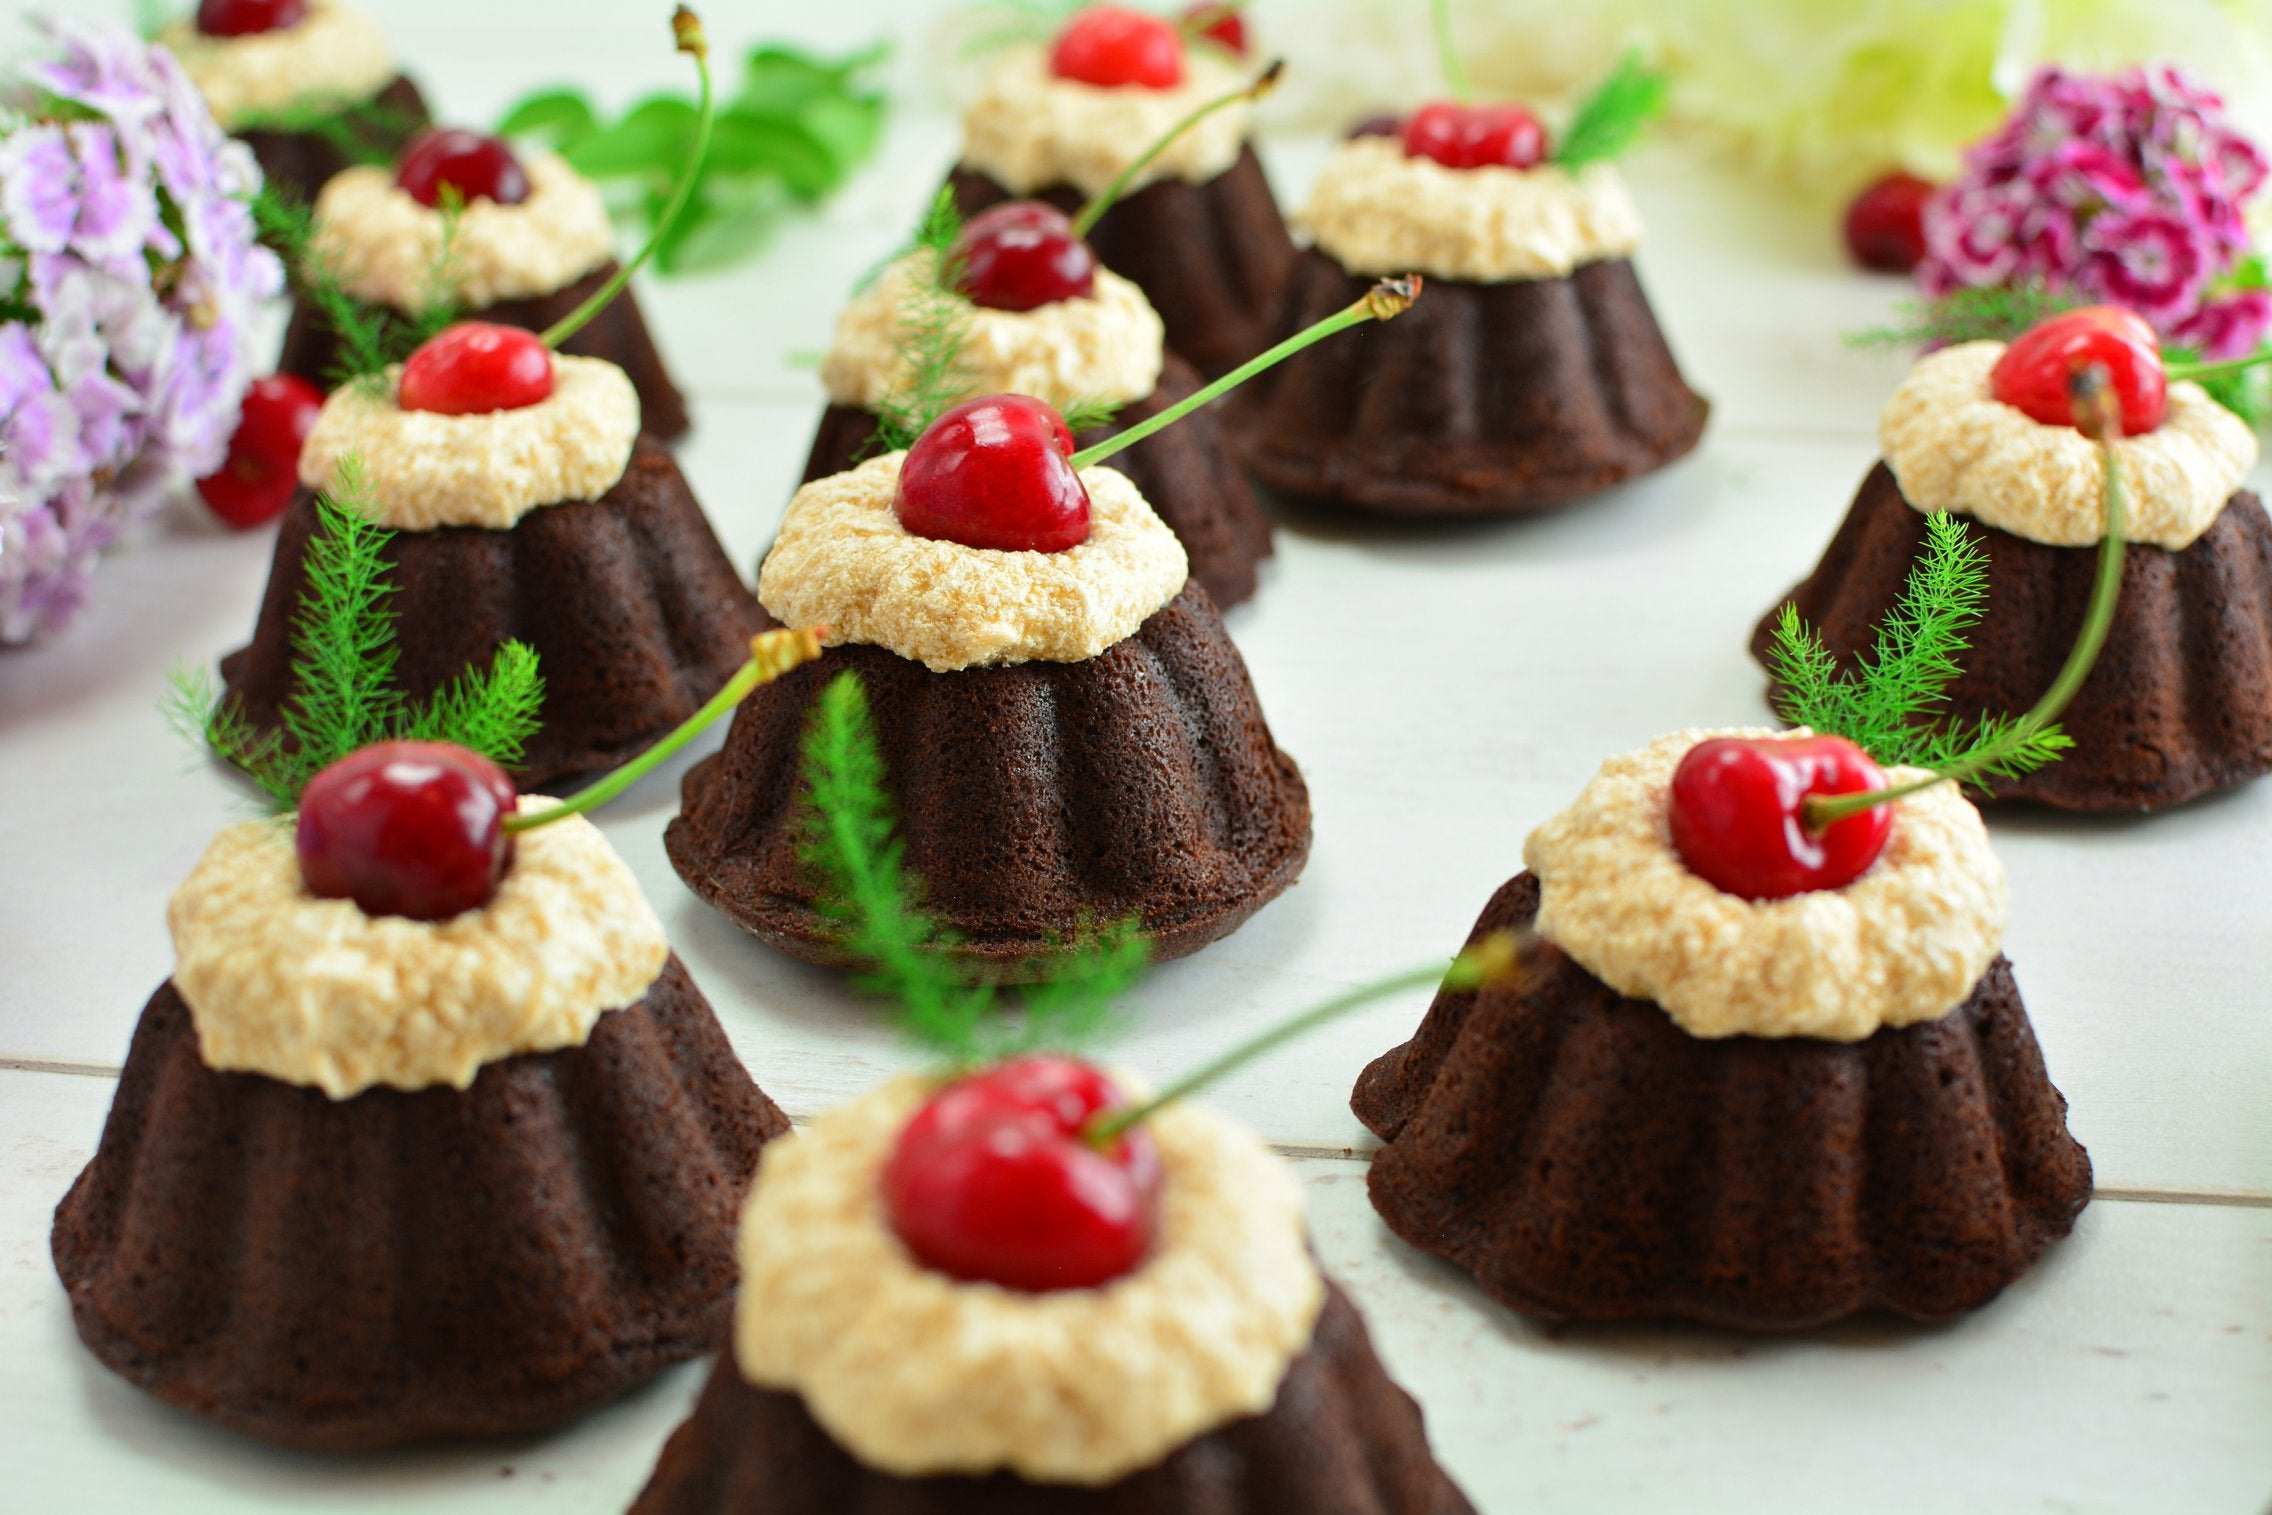 Maca Mini Cherry Bundt Cakes with Cocoa